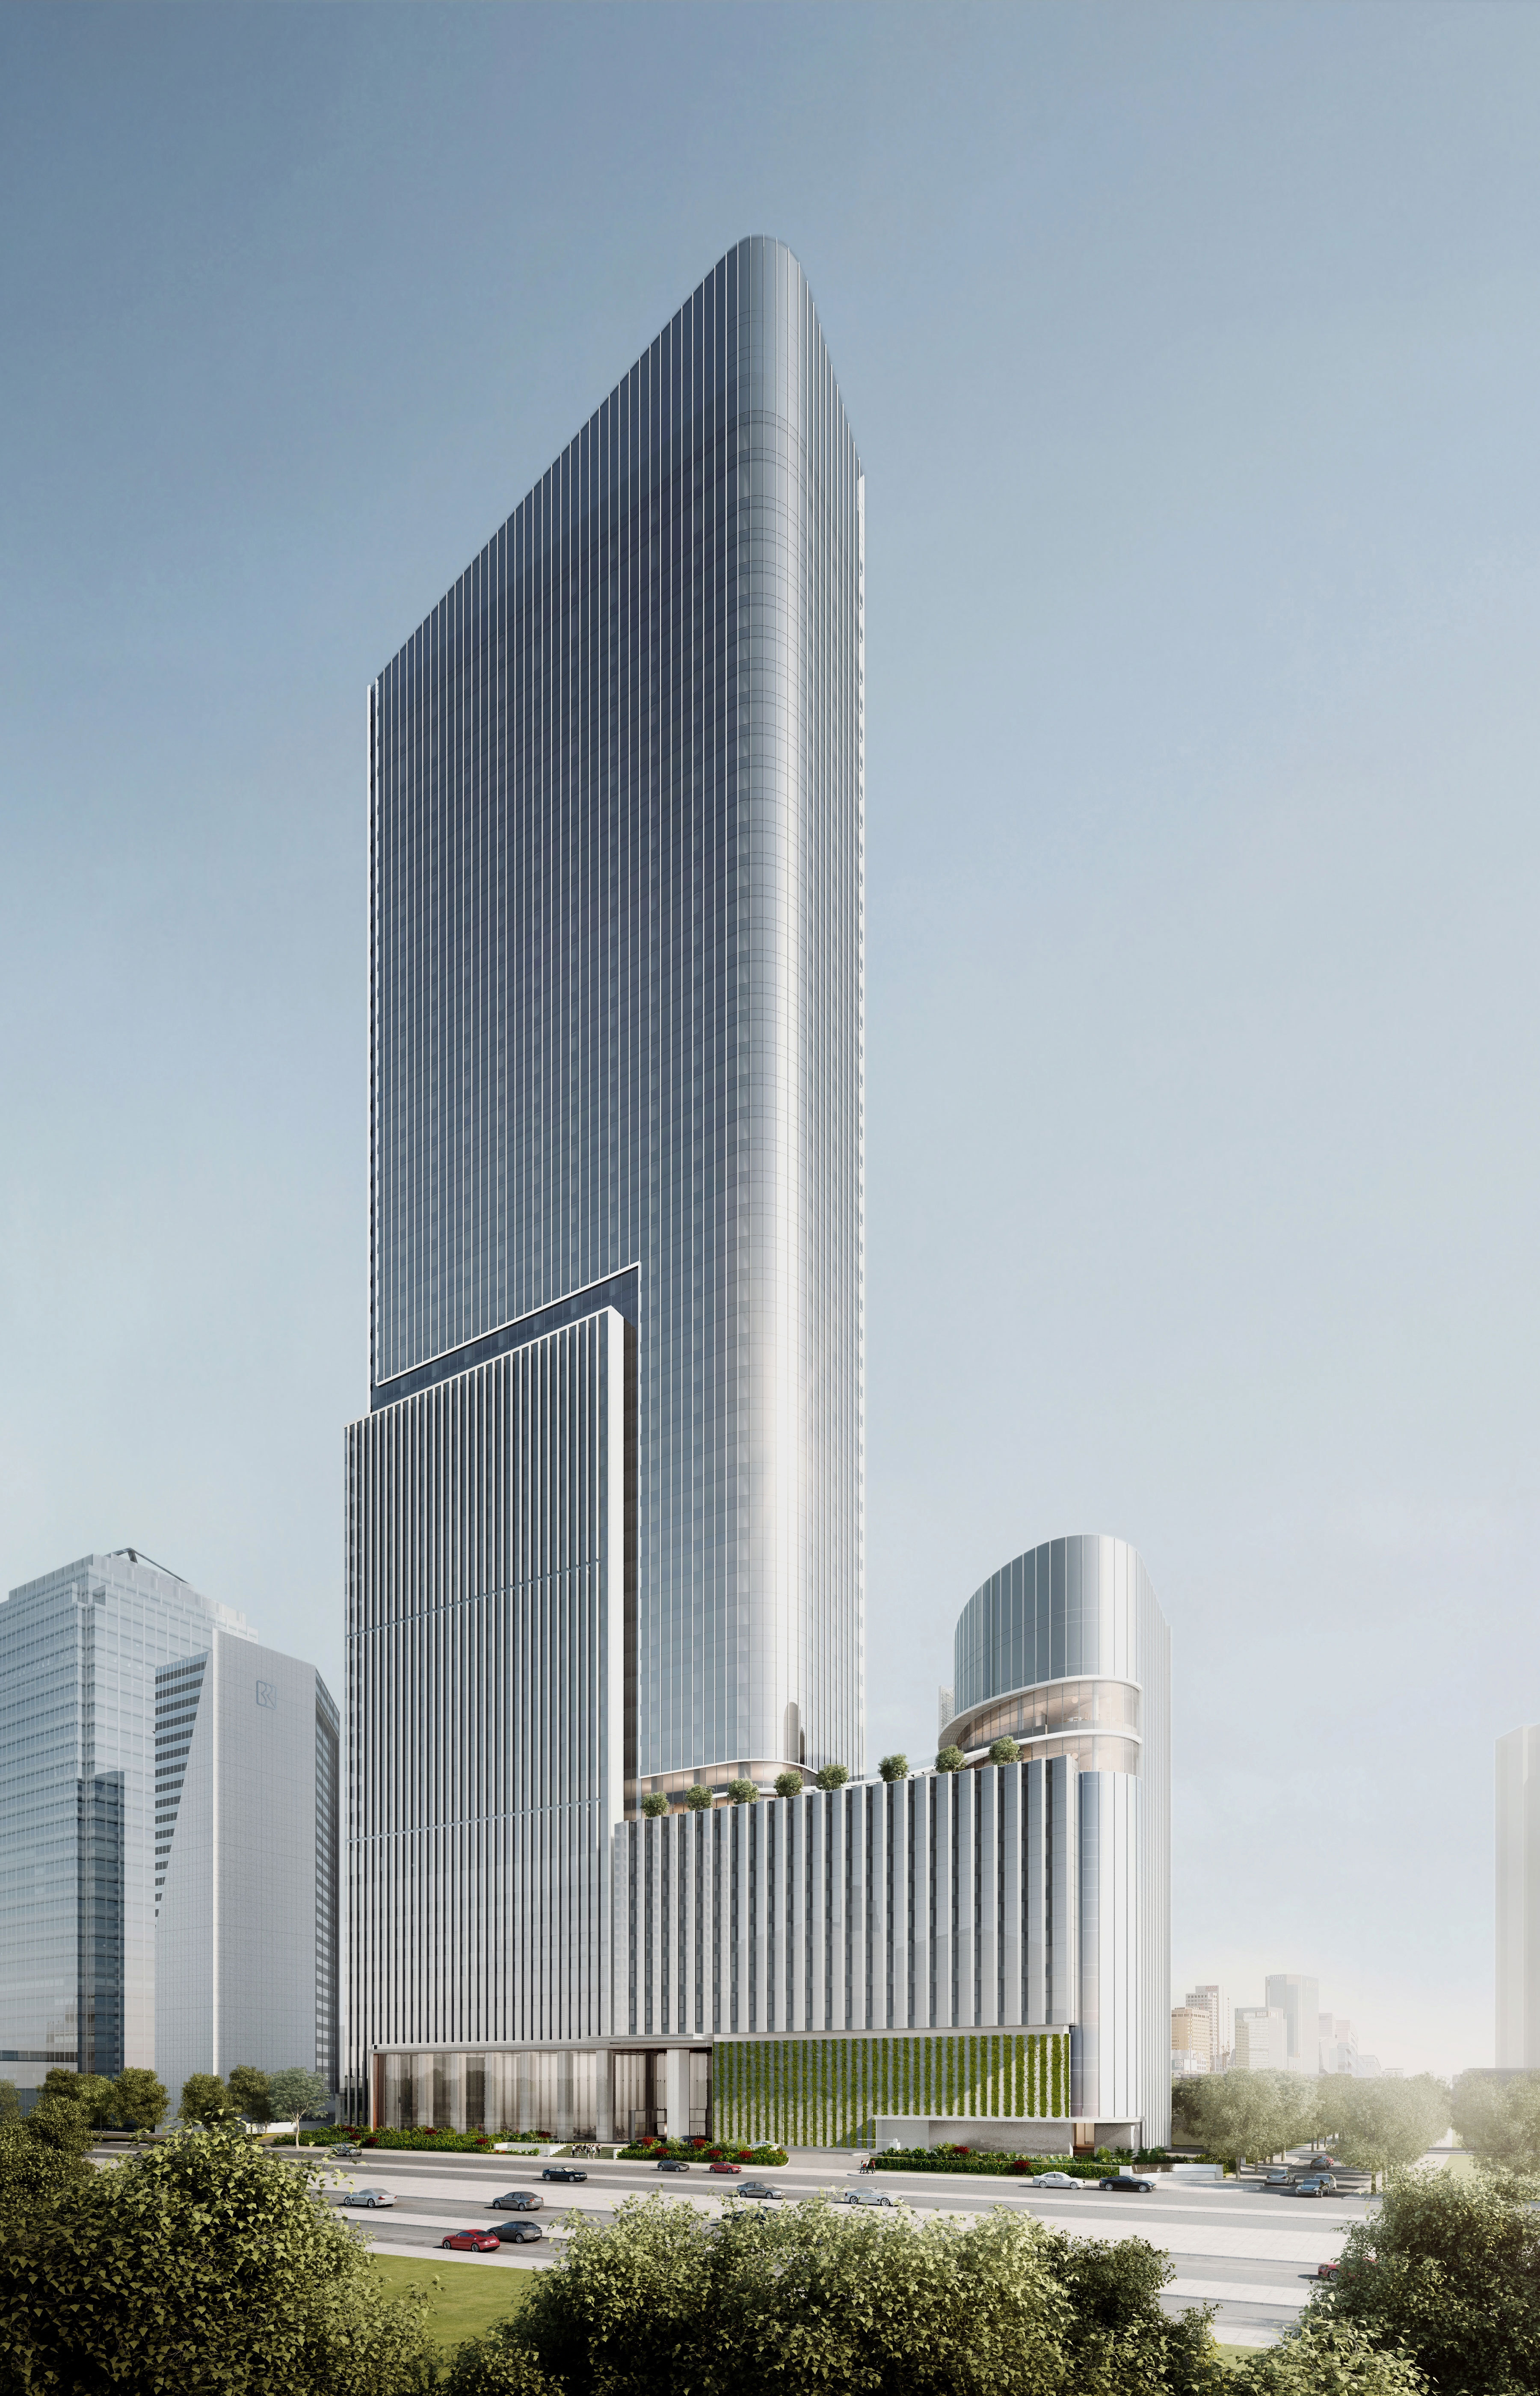 Entrance Design Mori Building Launches Construction Of Office Tower In